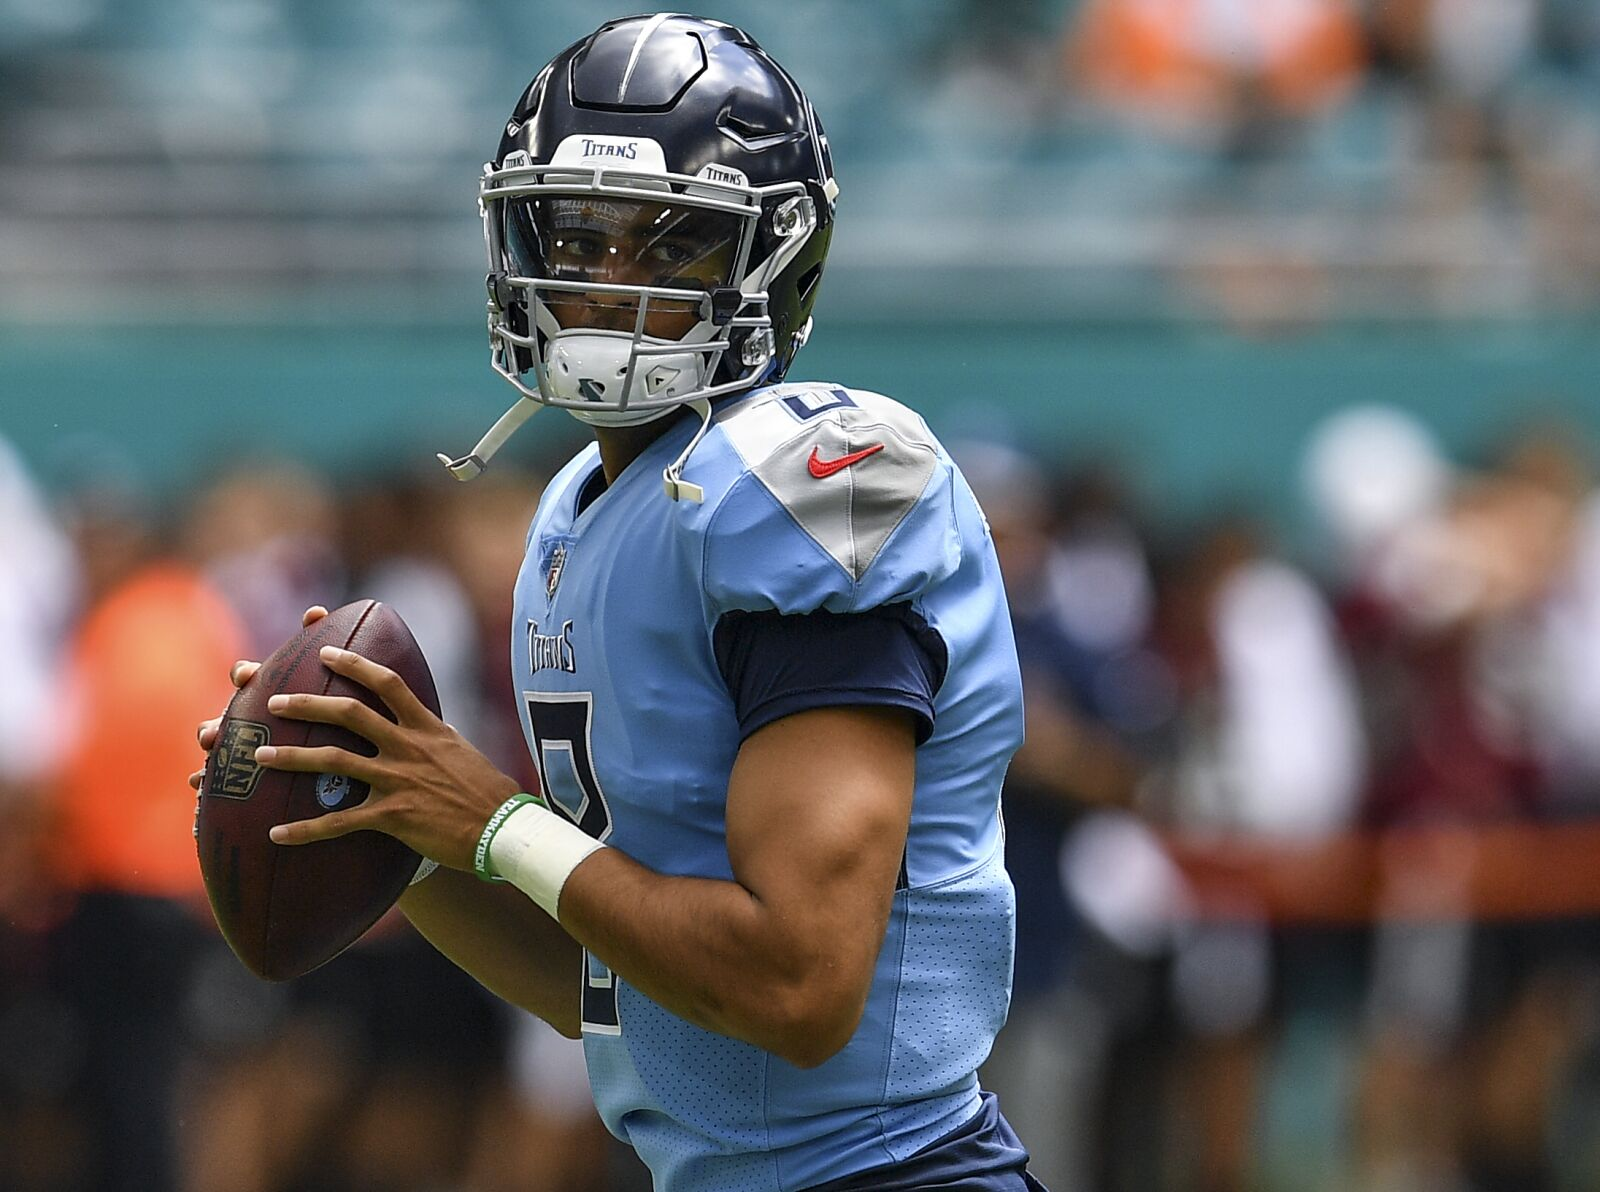 Tennessee Titans: Dan Orlovsky's Marcus Mariota take is the worst yet